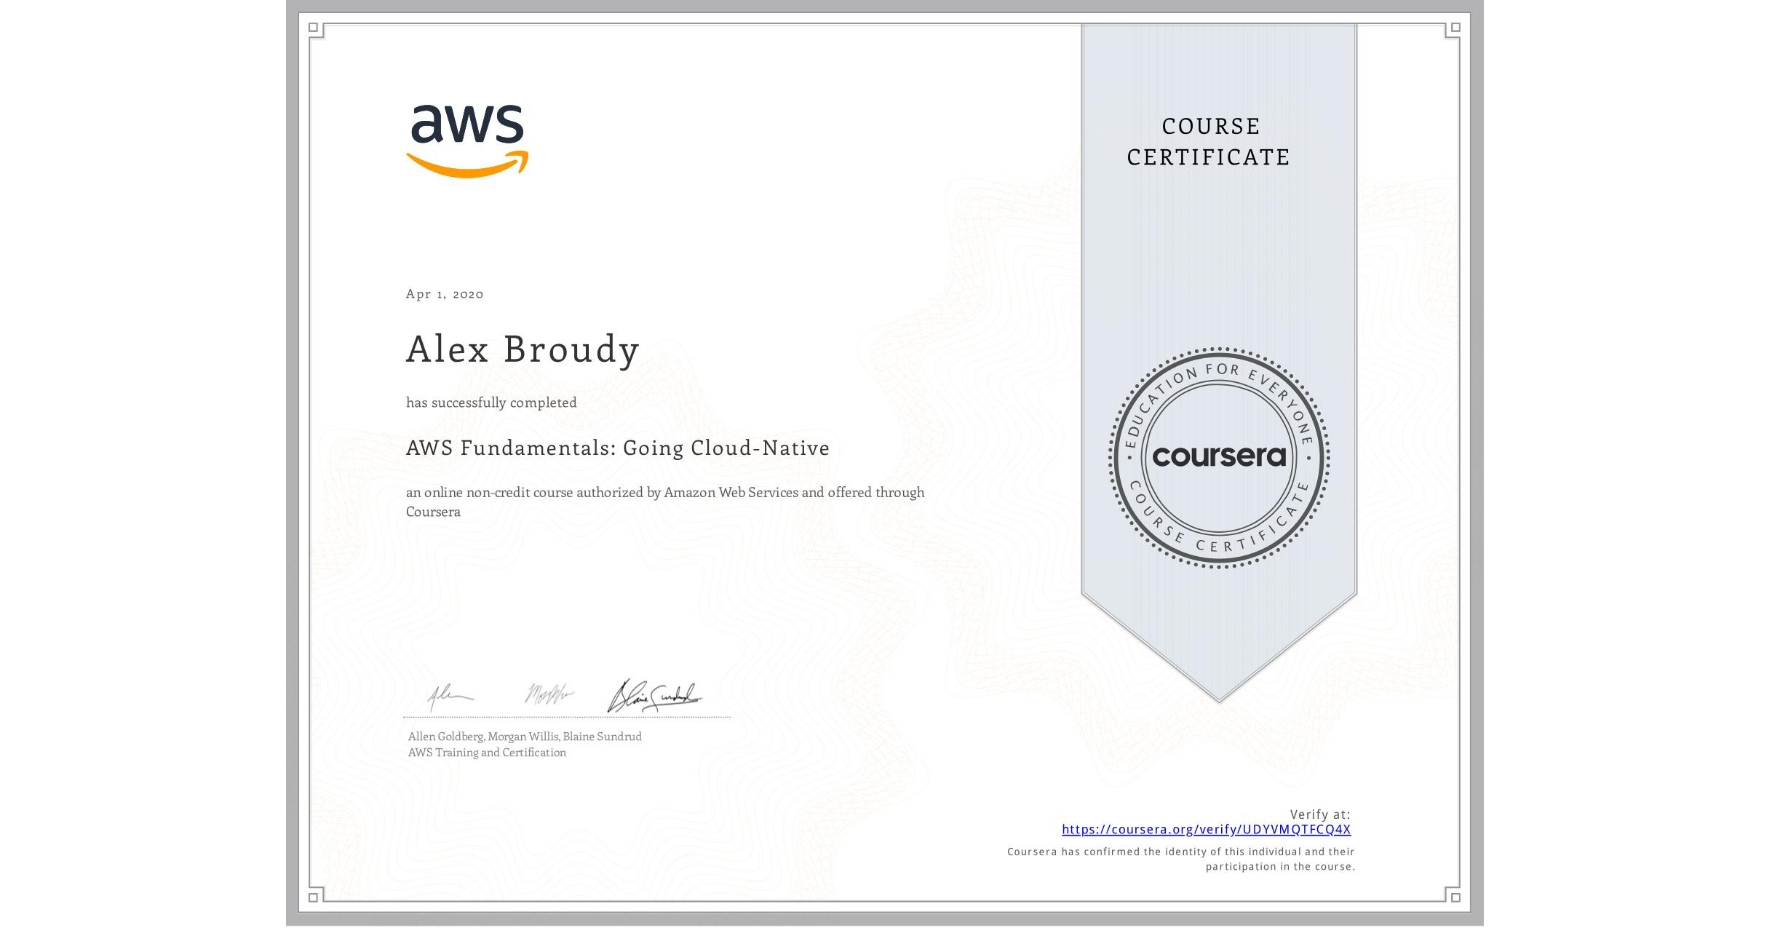 View certificate for Alex Broudy, AWS Fundamentals: Going Cloud-Native, an online non-credit course authorized by Amazon Web Services and offered through Coursera